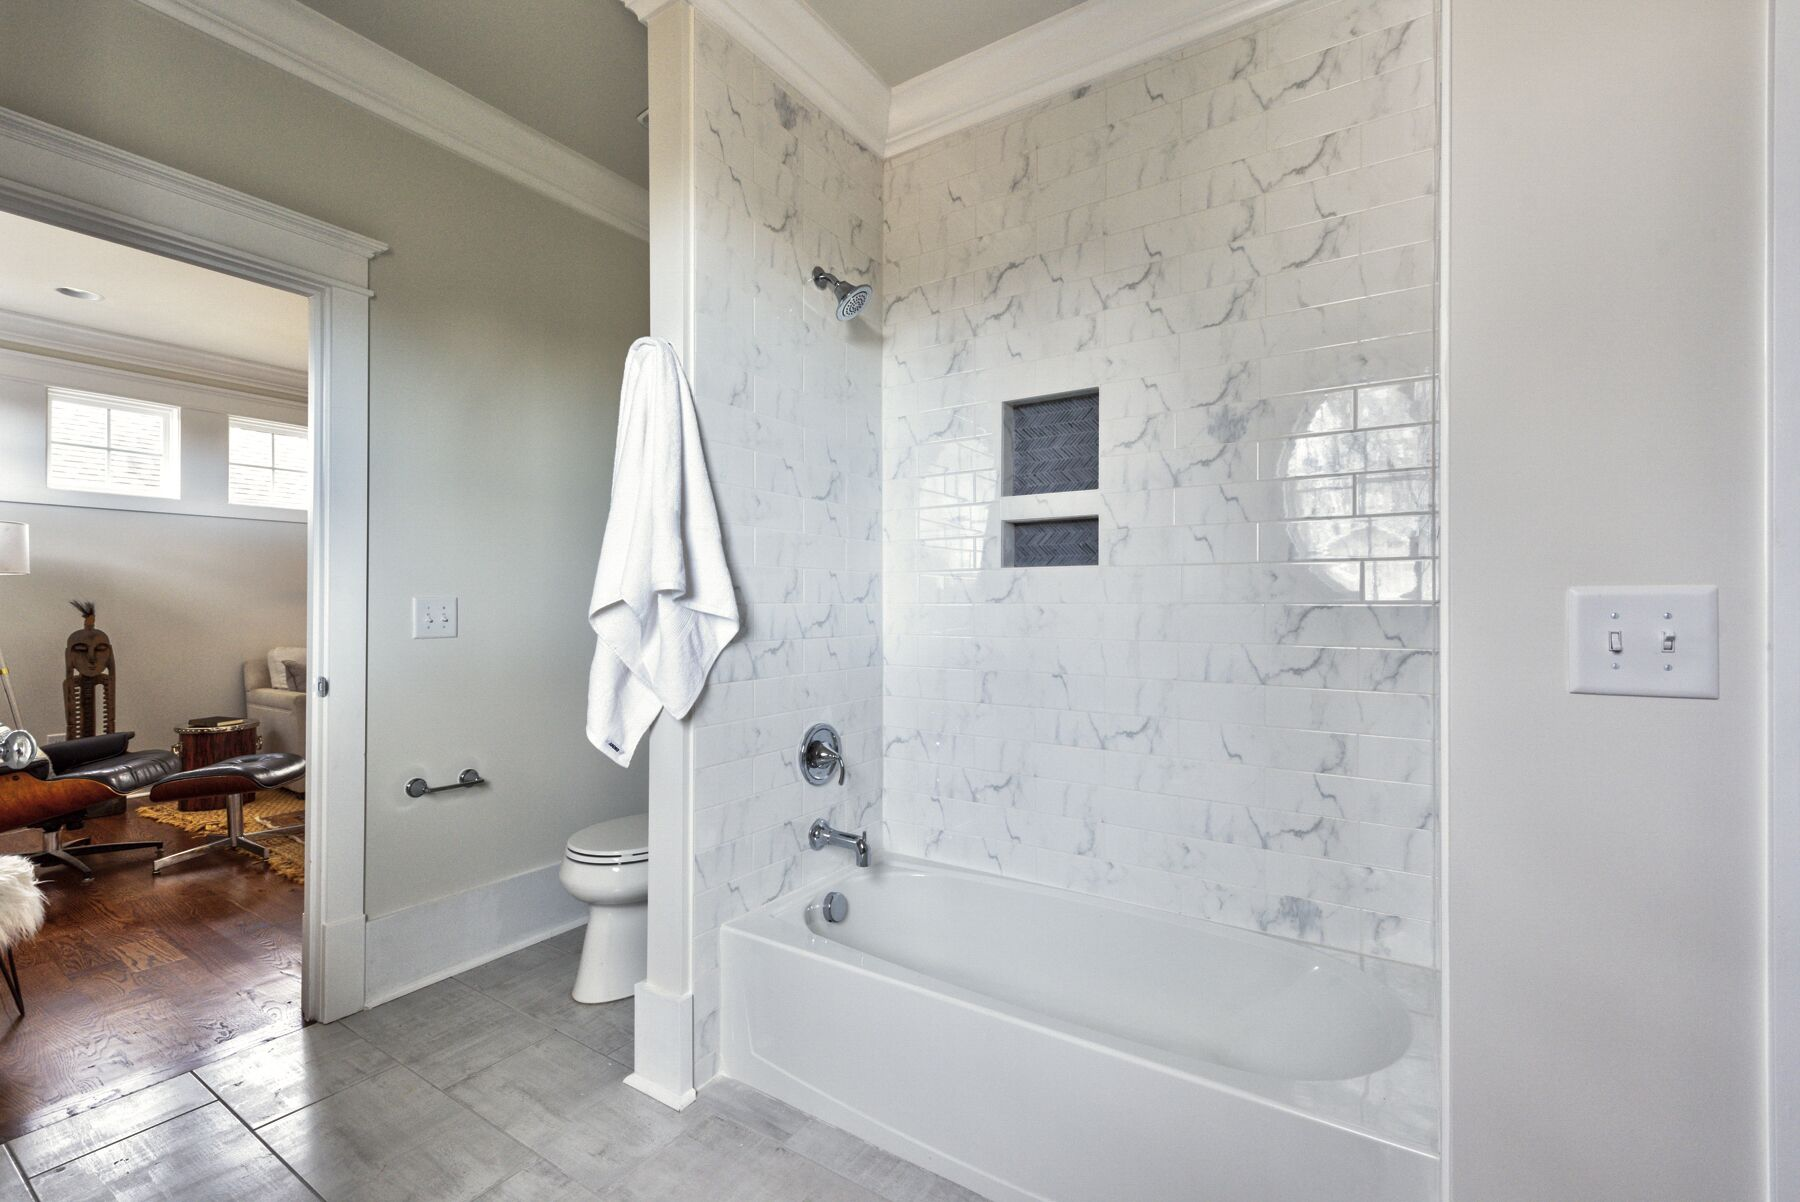 Bathroom Tile Ideas In Charlotte Nc Queen City Stone Tile